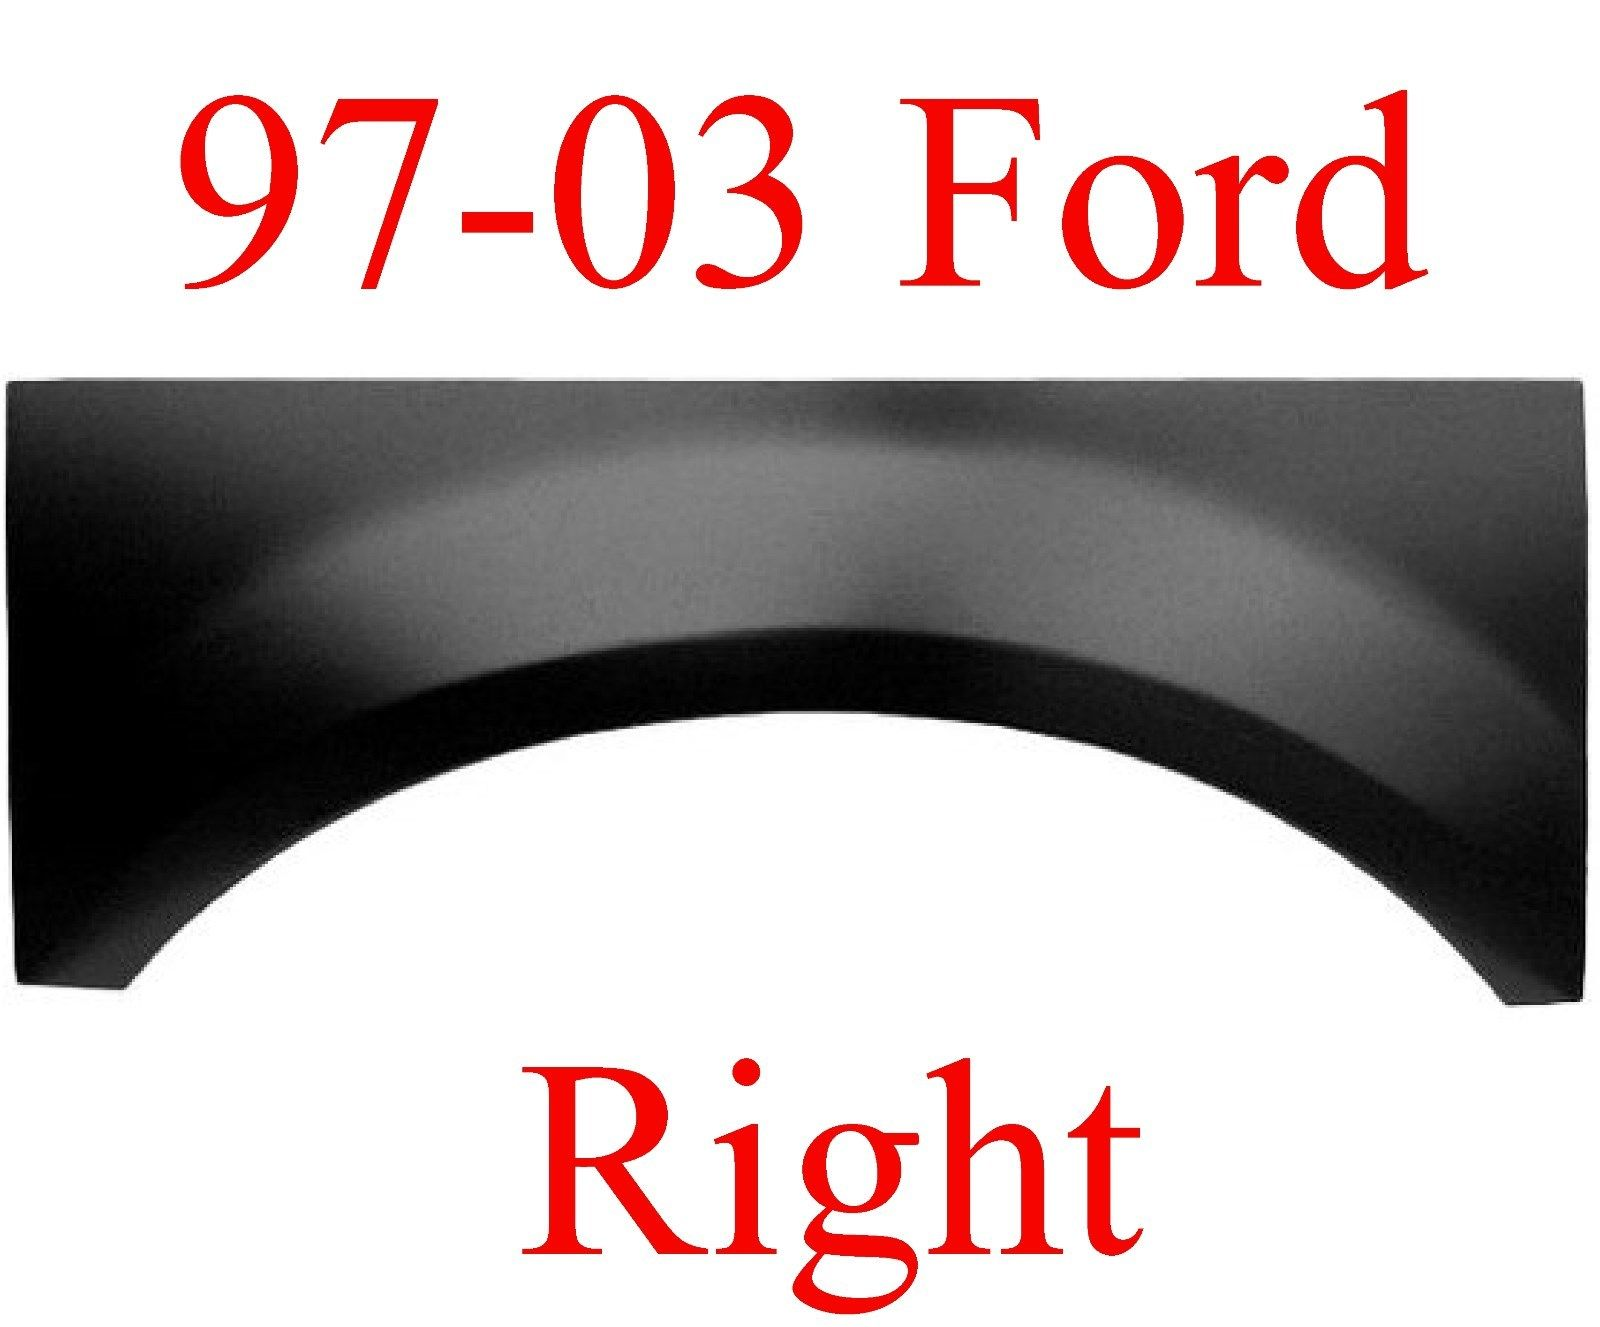 97-03 Ford F150 Right Upper Arch